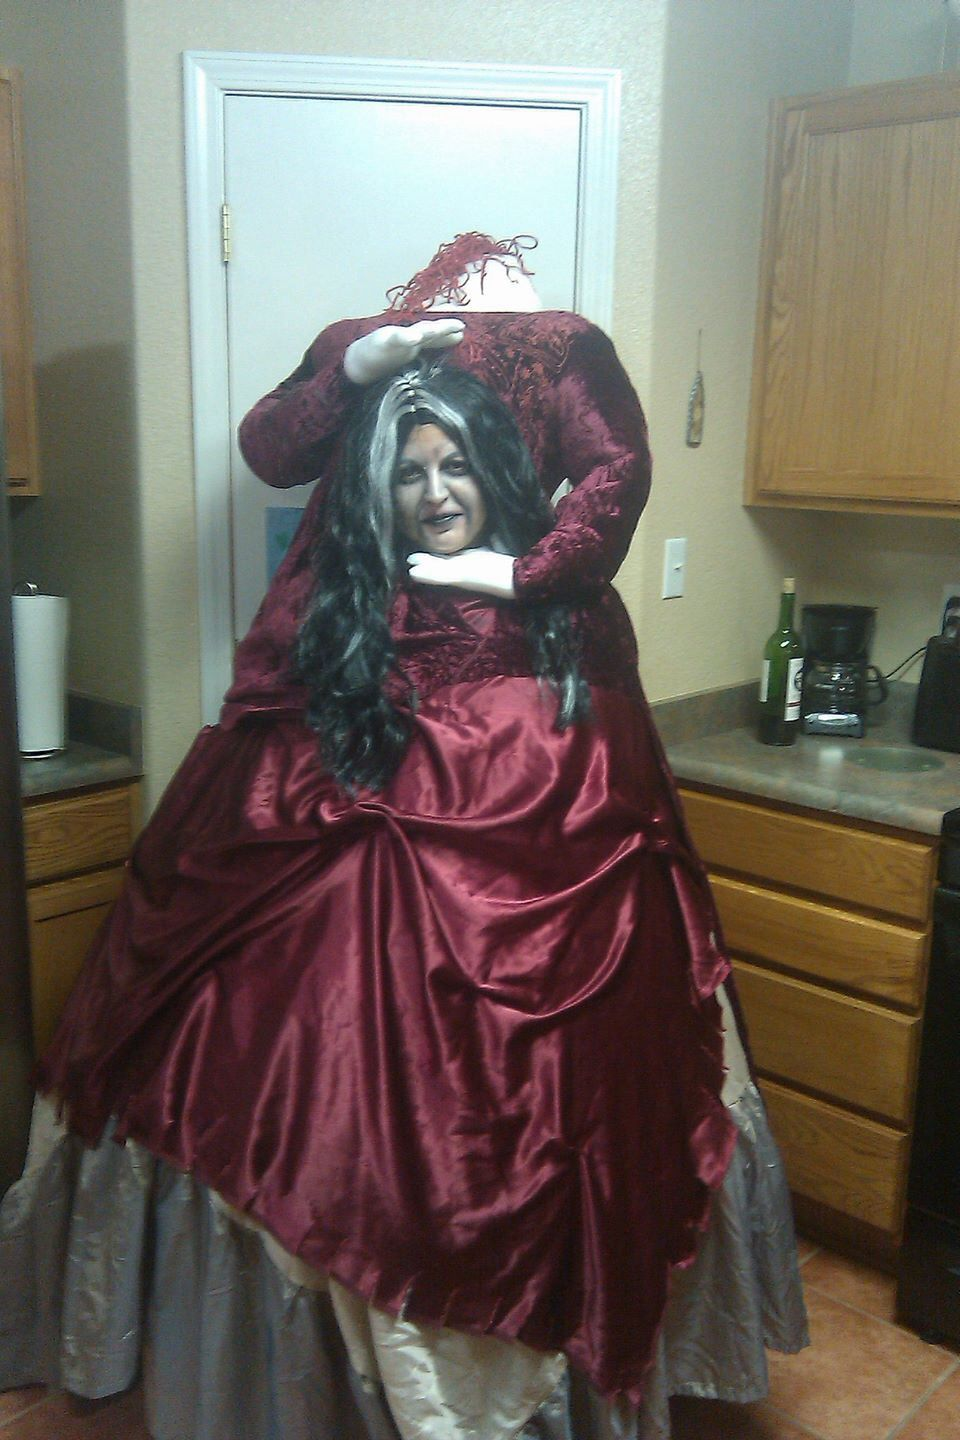 Headless Halloween costume! Cost me $20 to make in about 4 hours ...